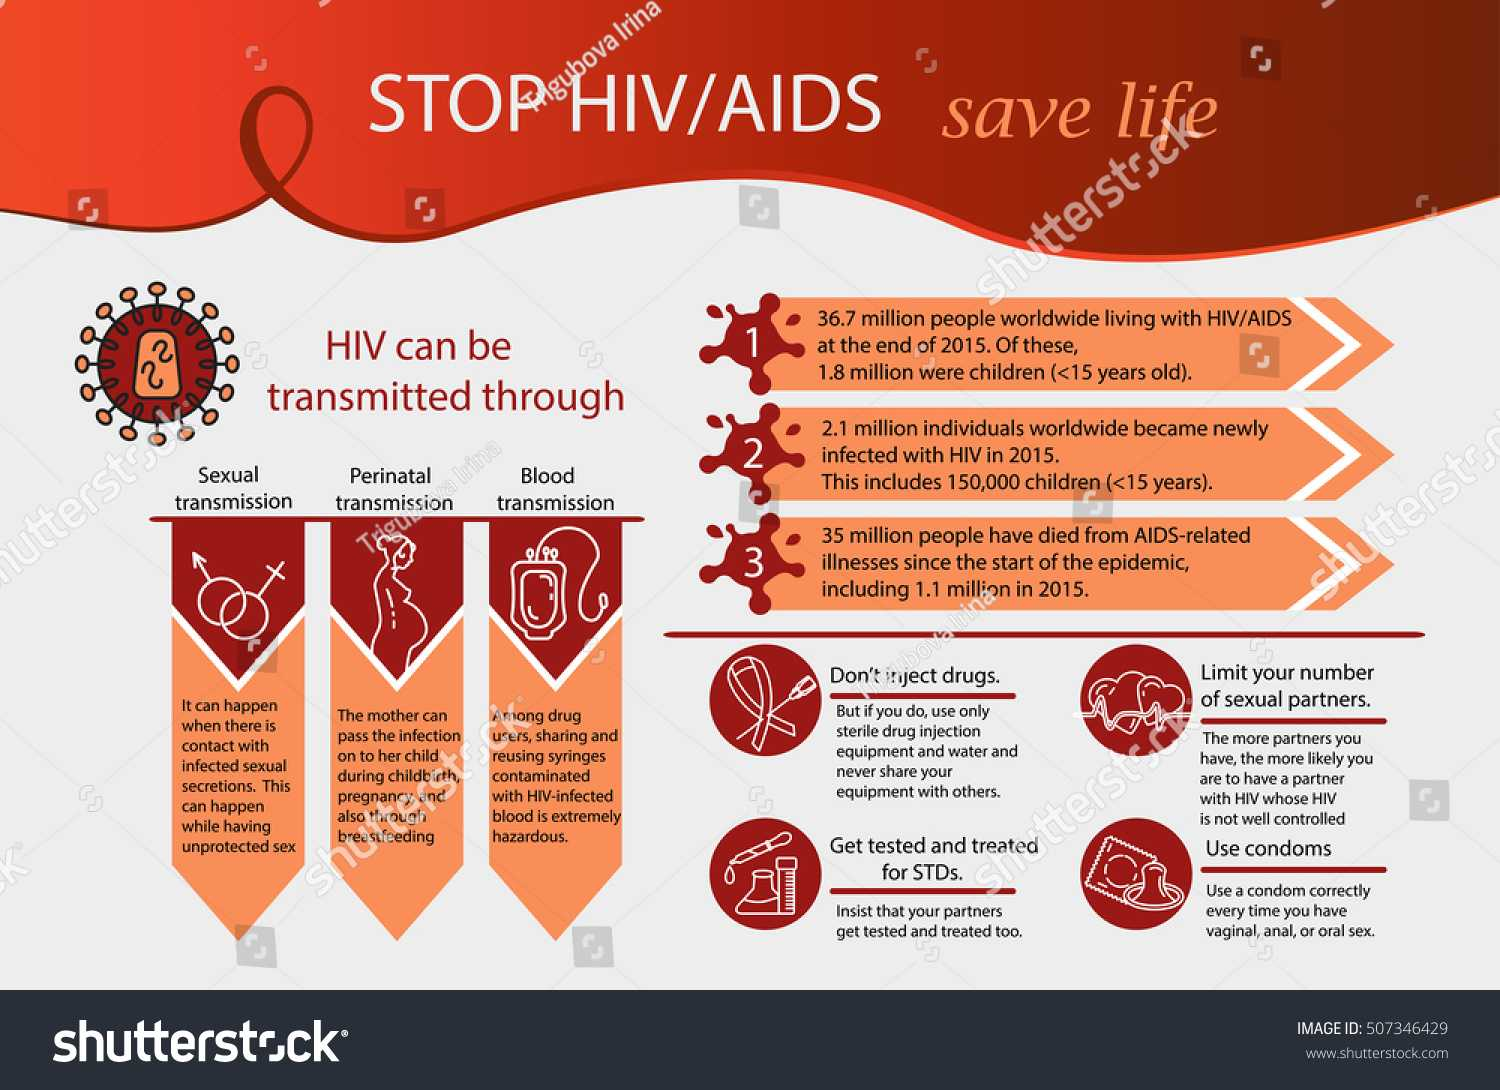 Hiv Aids Brochure Templates | Rohanspong with Hiv Aids Brochure Templates